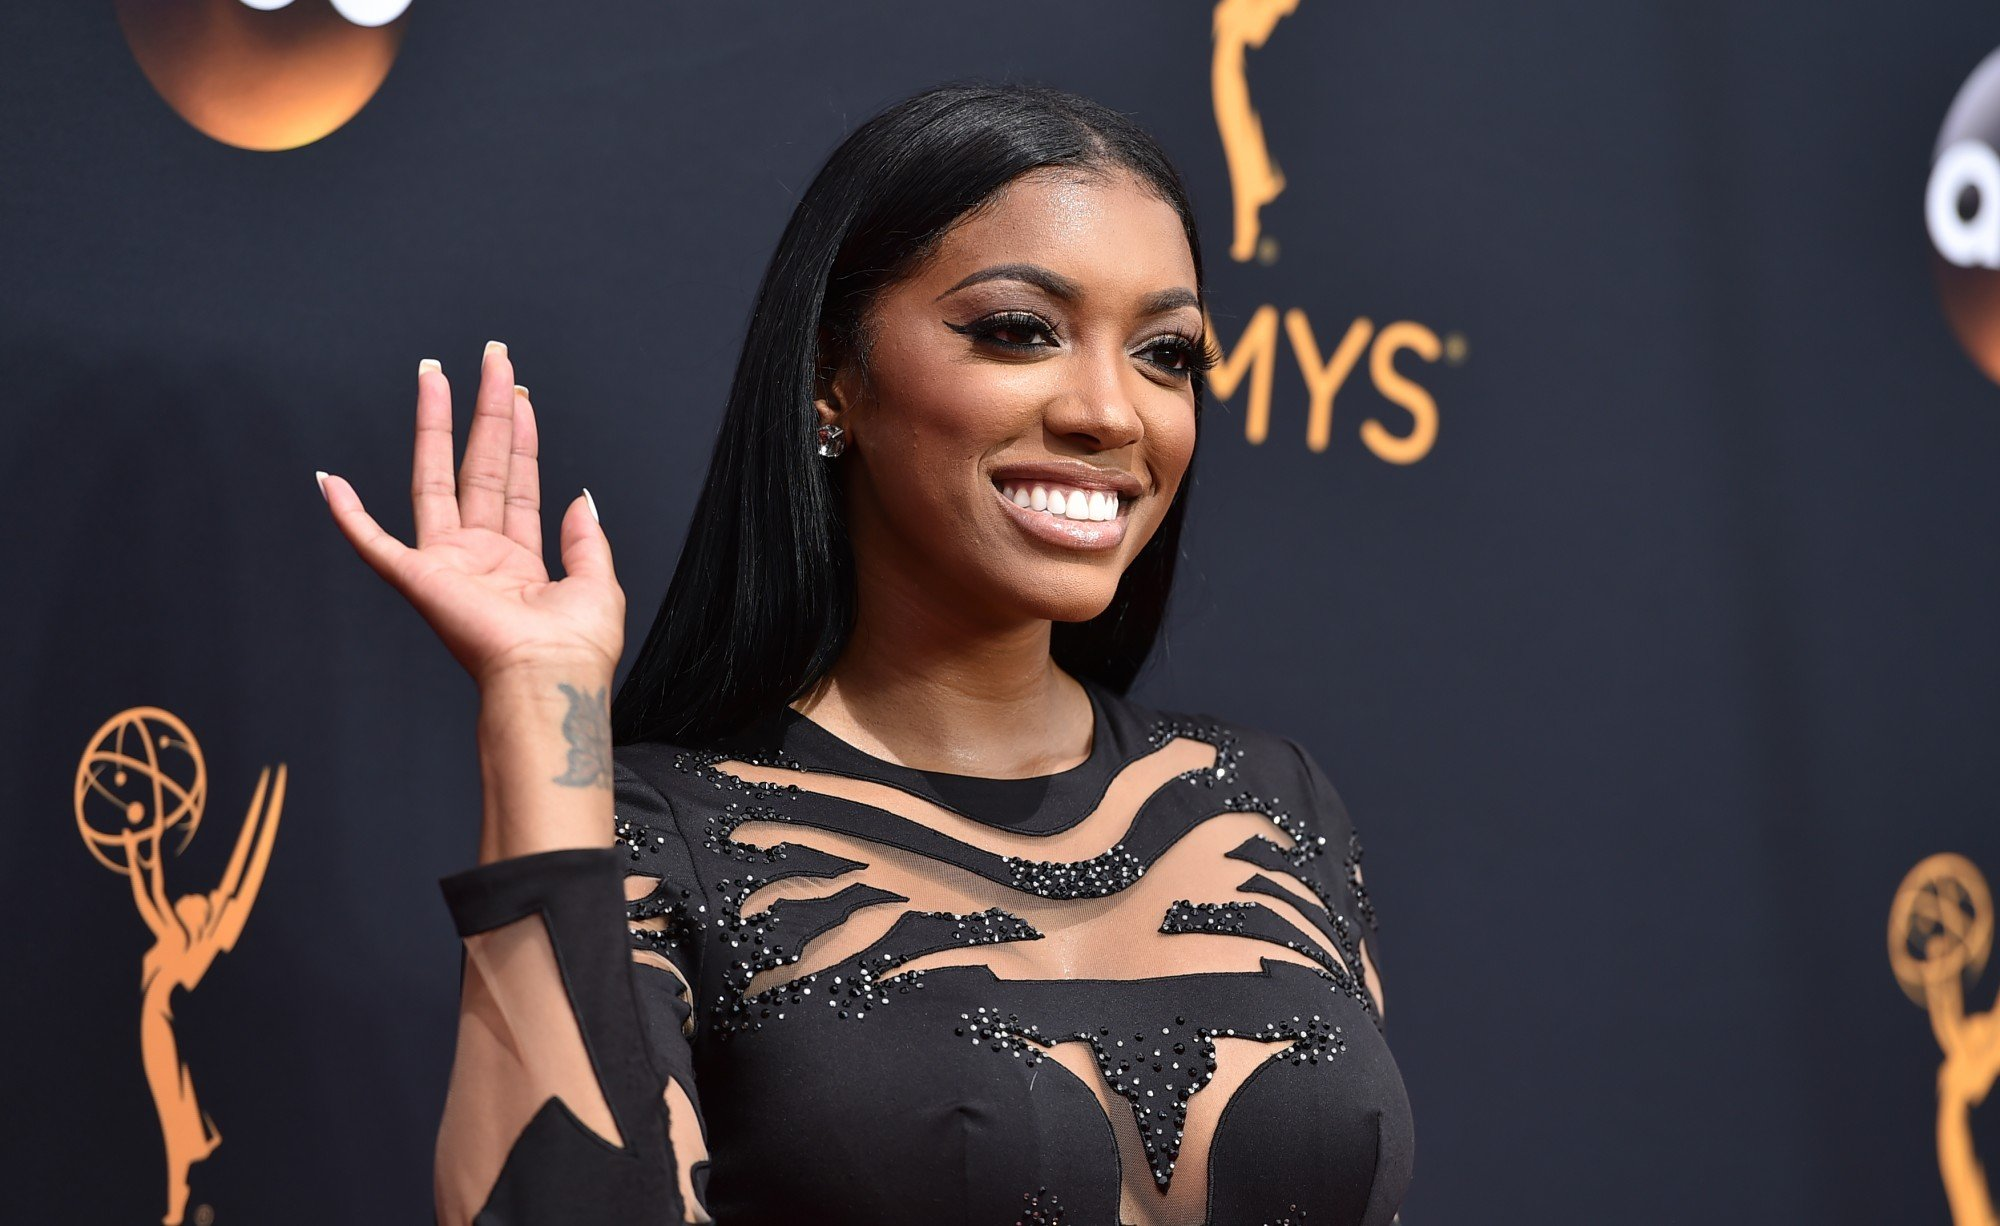 Porsha Williams Makes Fans' Holiday Shopping Merrier With This Announcement